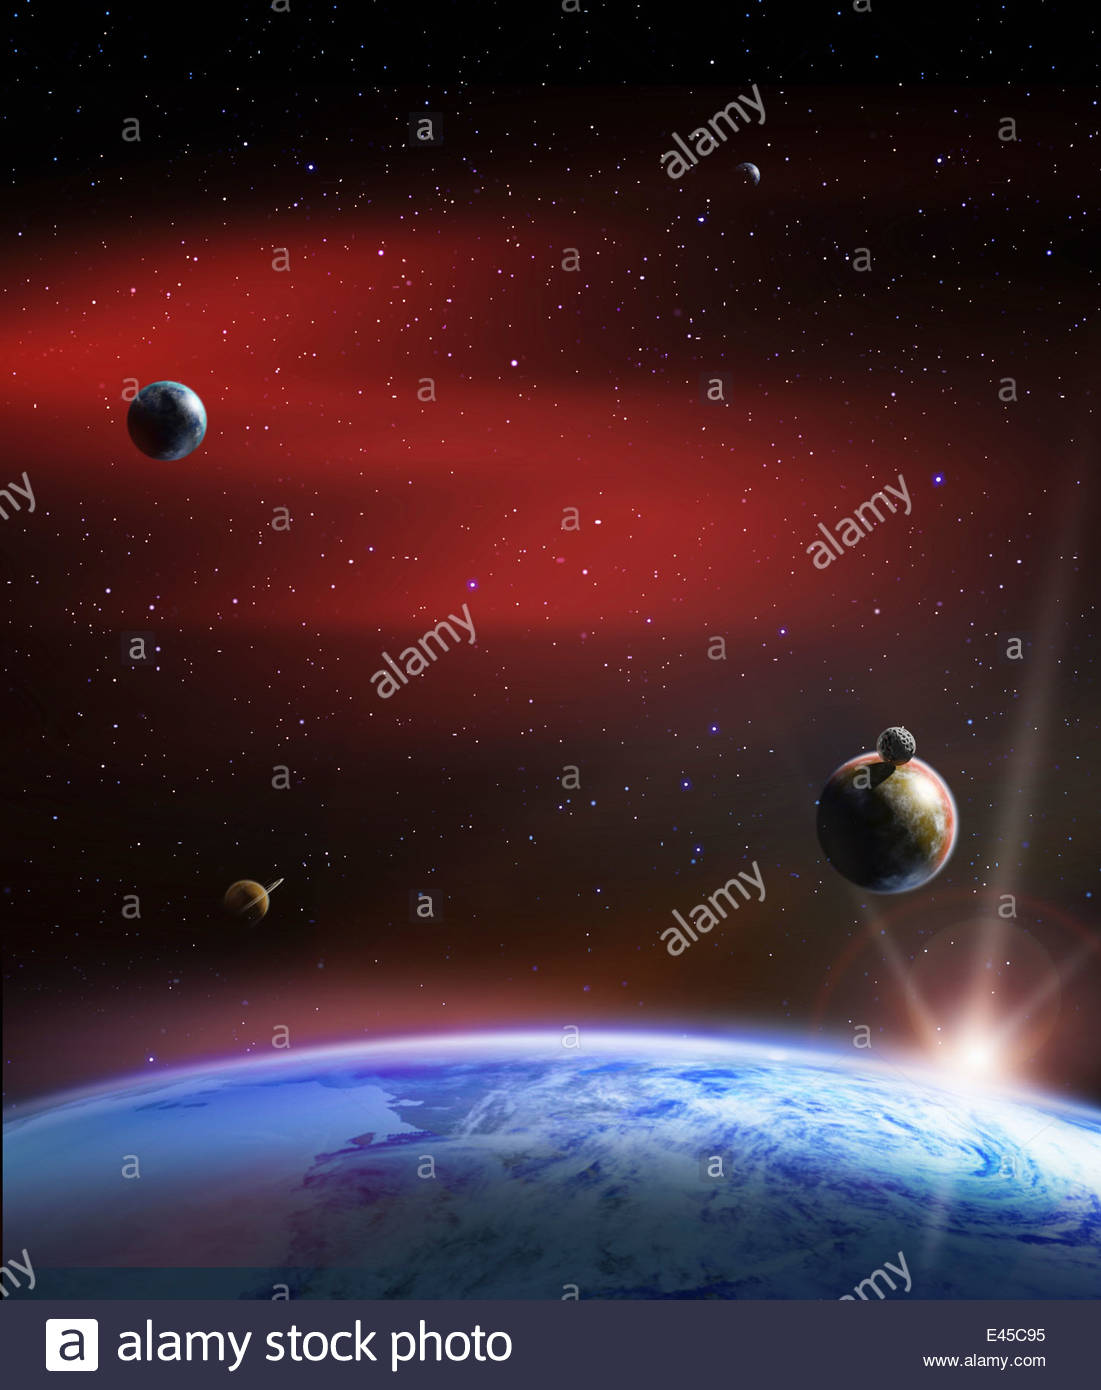 Outer Planets Stock Photos & Outer Planets Stock Images ...